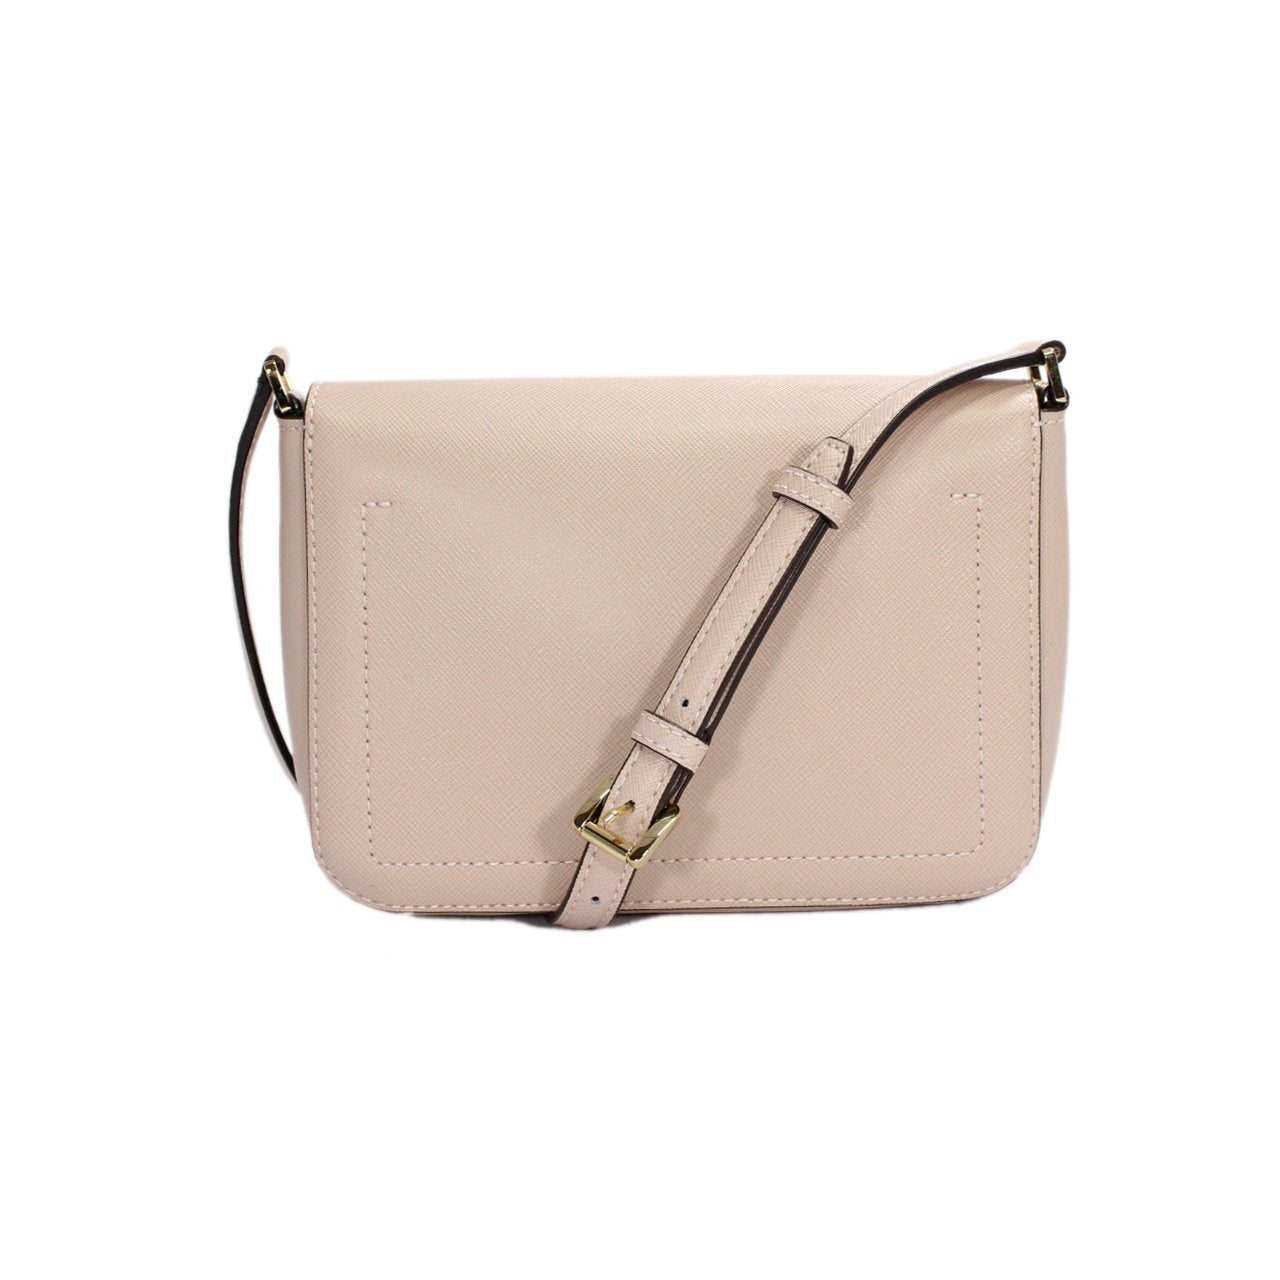 Michael Kors Greenwich Flap Leather Crossbody Bag